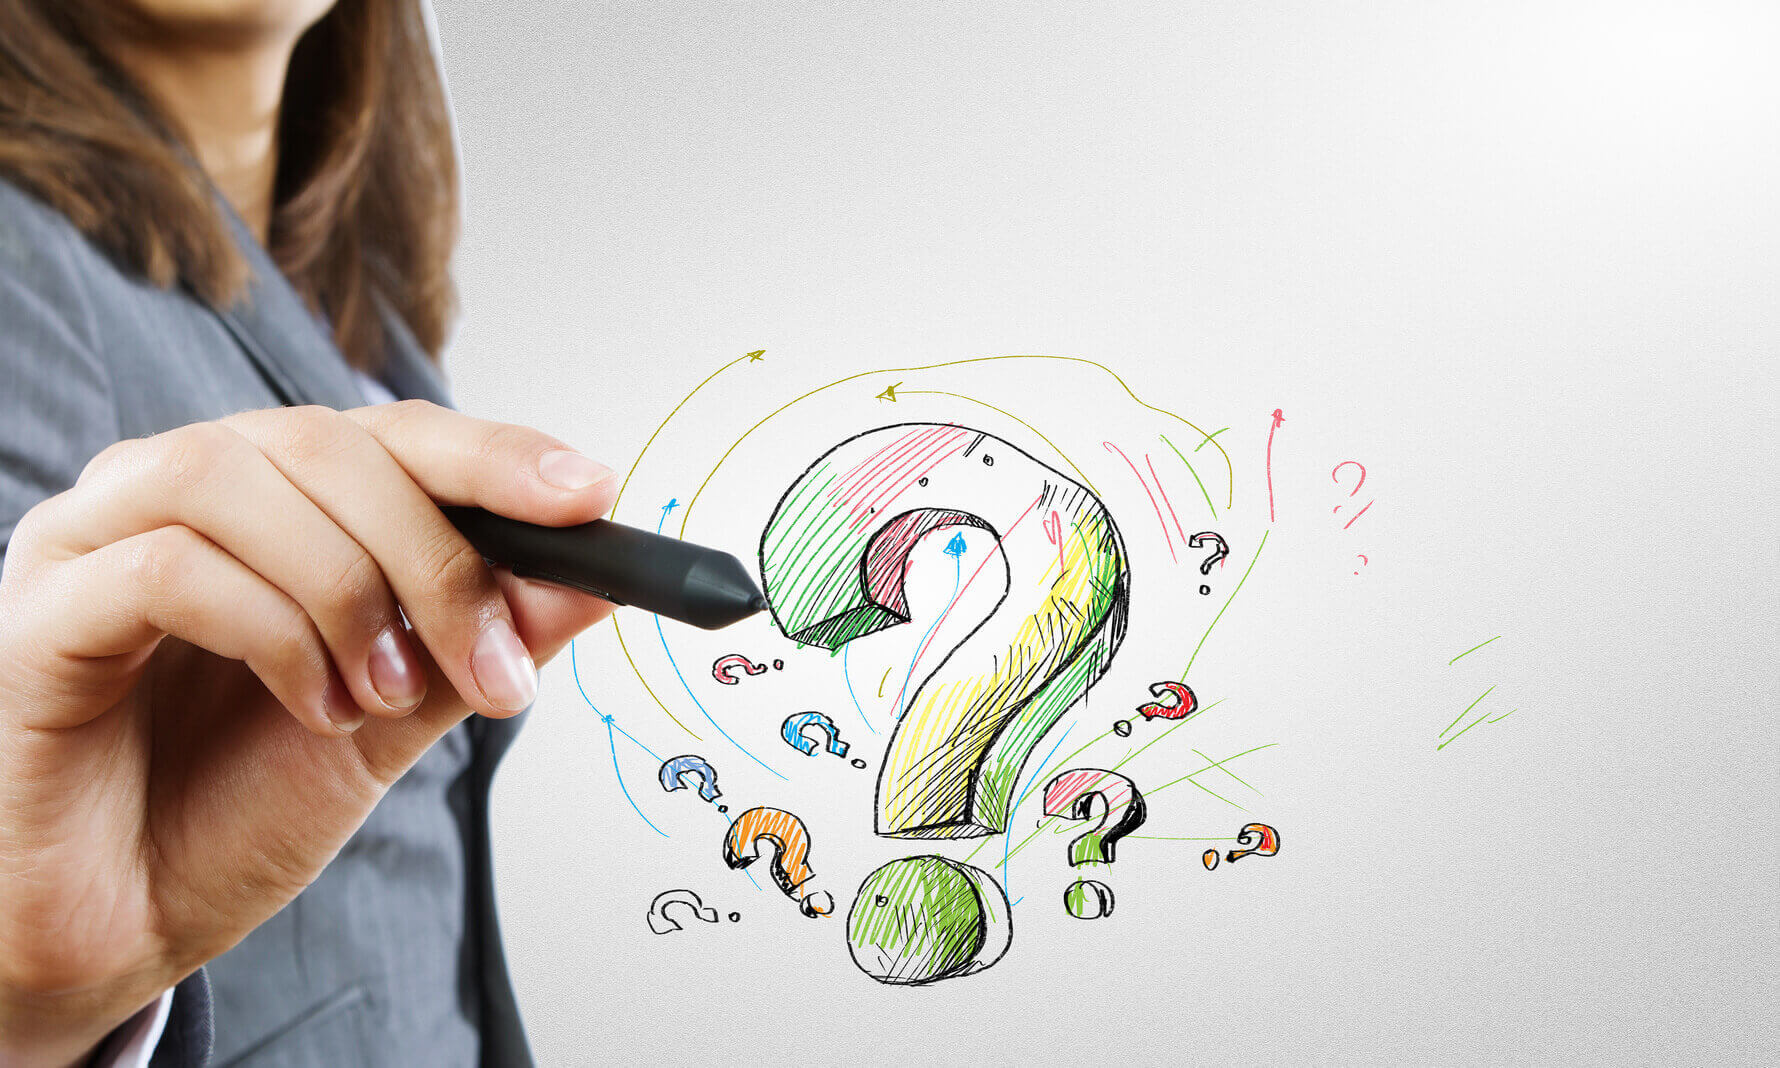 questions-and-answers-software-capabilities